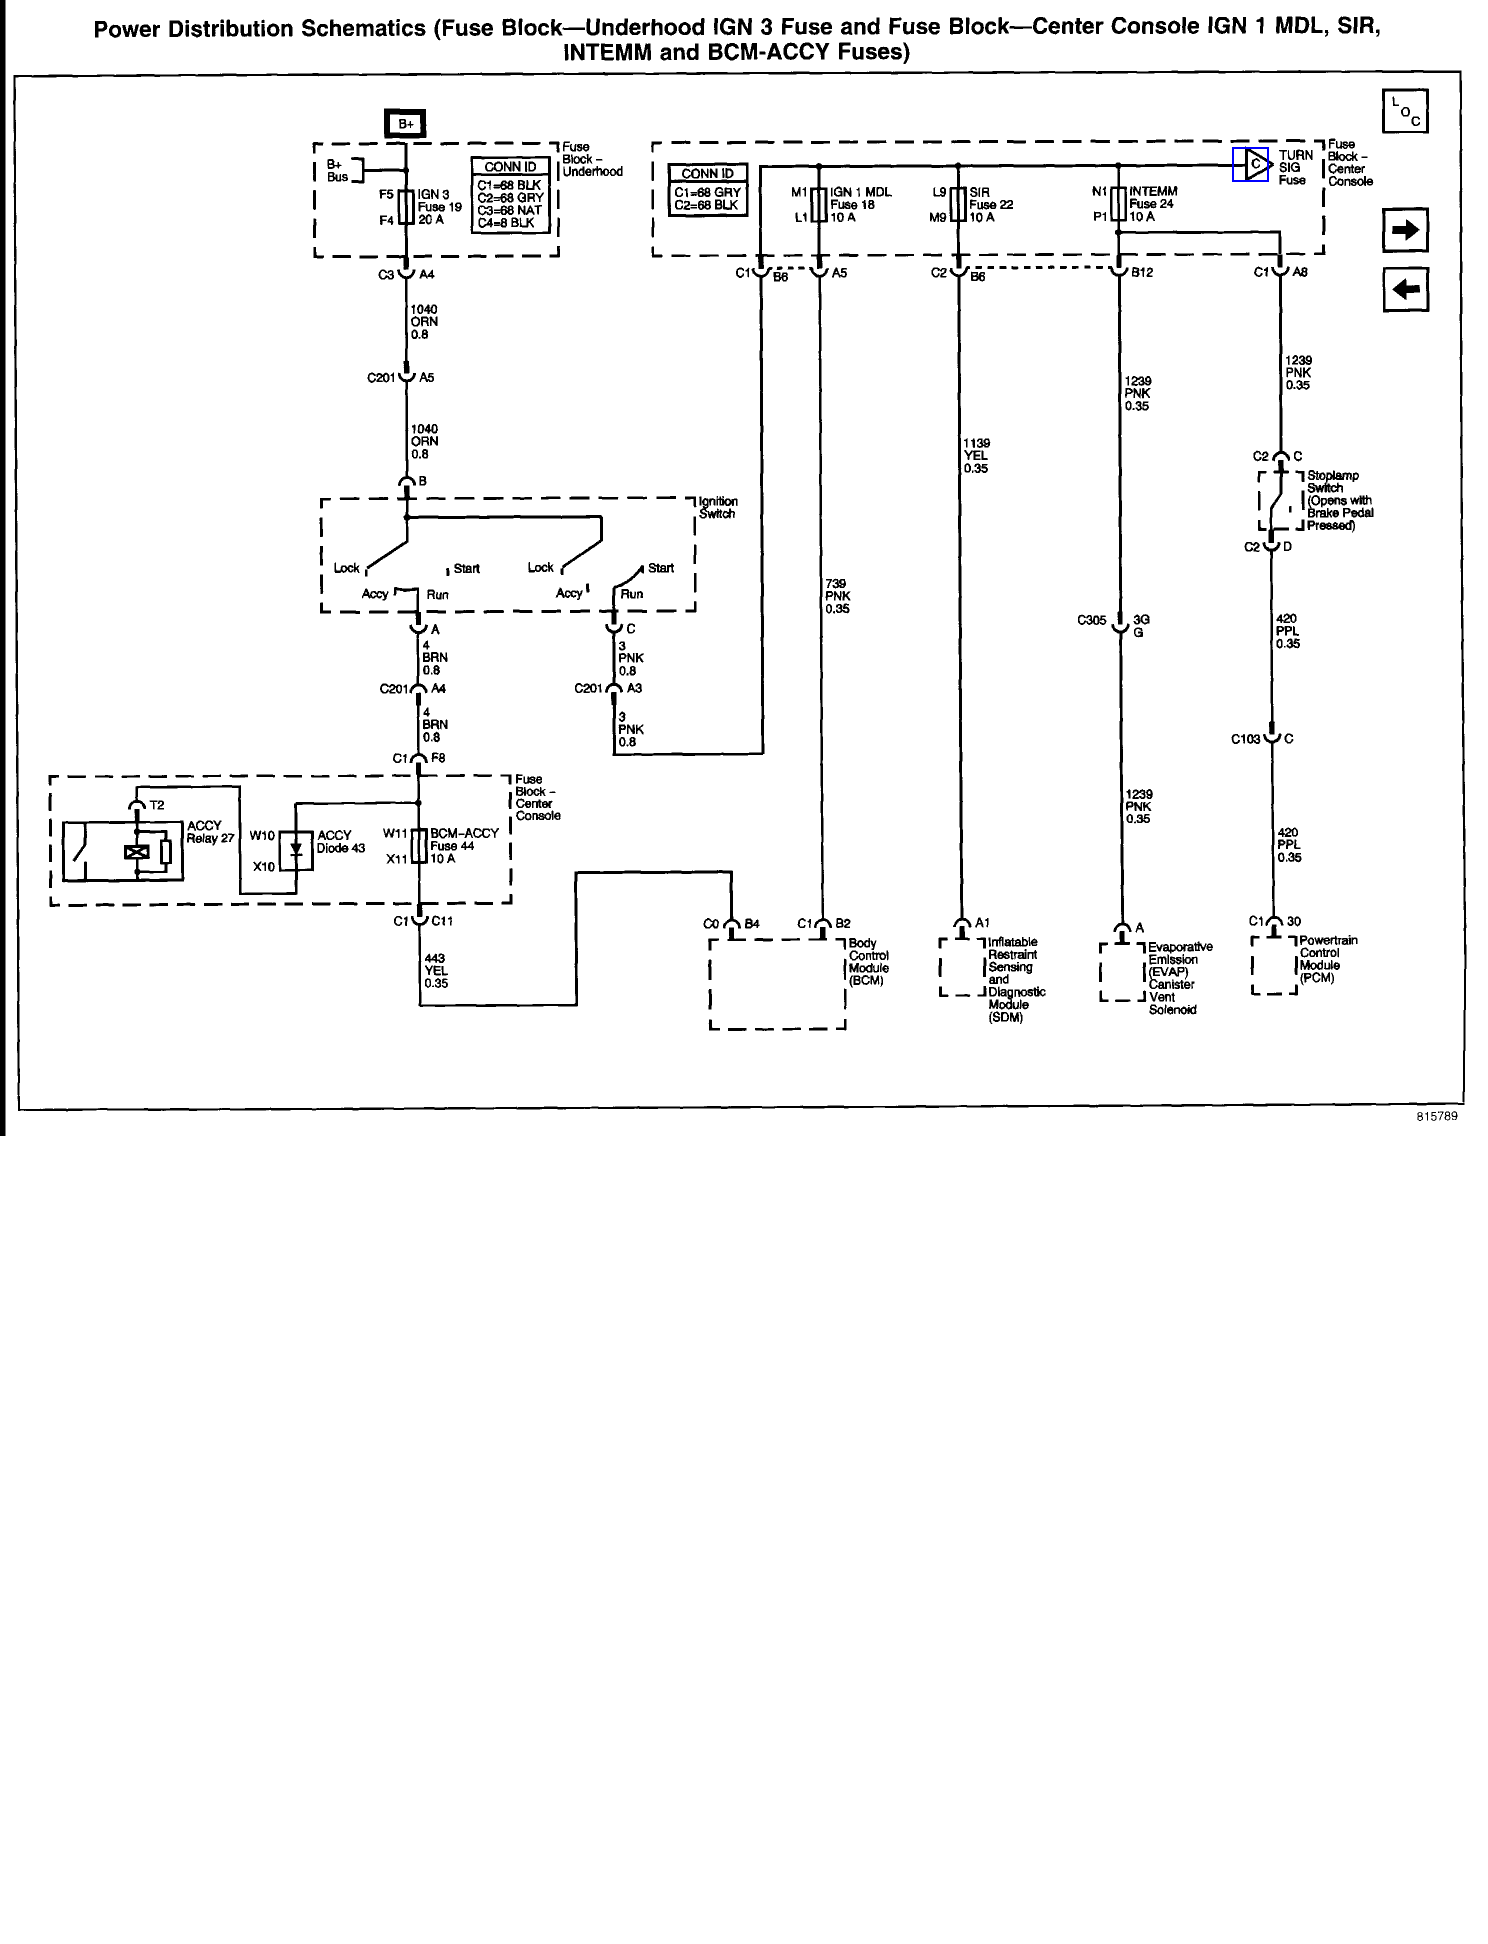 2013 03 15_164926_1 i need a ignition switch wiering diagram for a 2002 buick rendezvous 2006 buick lacrosse wiring diagram at fashall.co